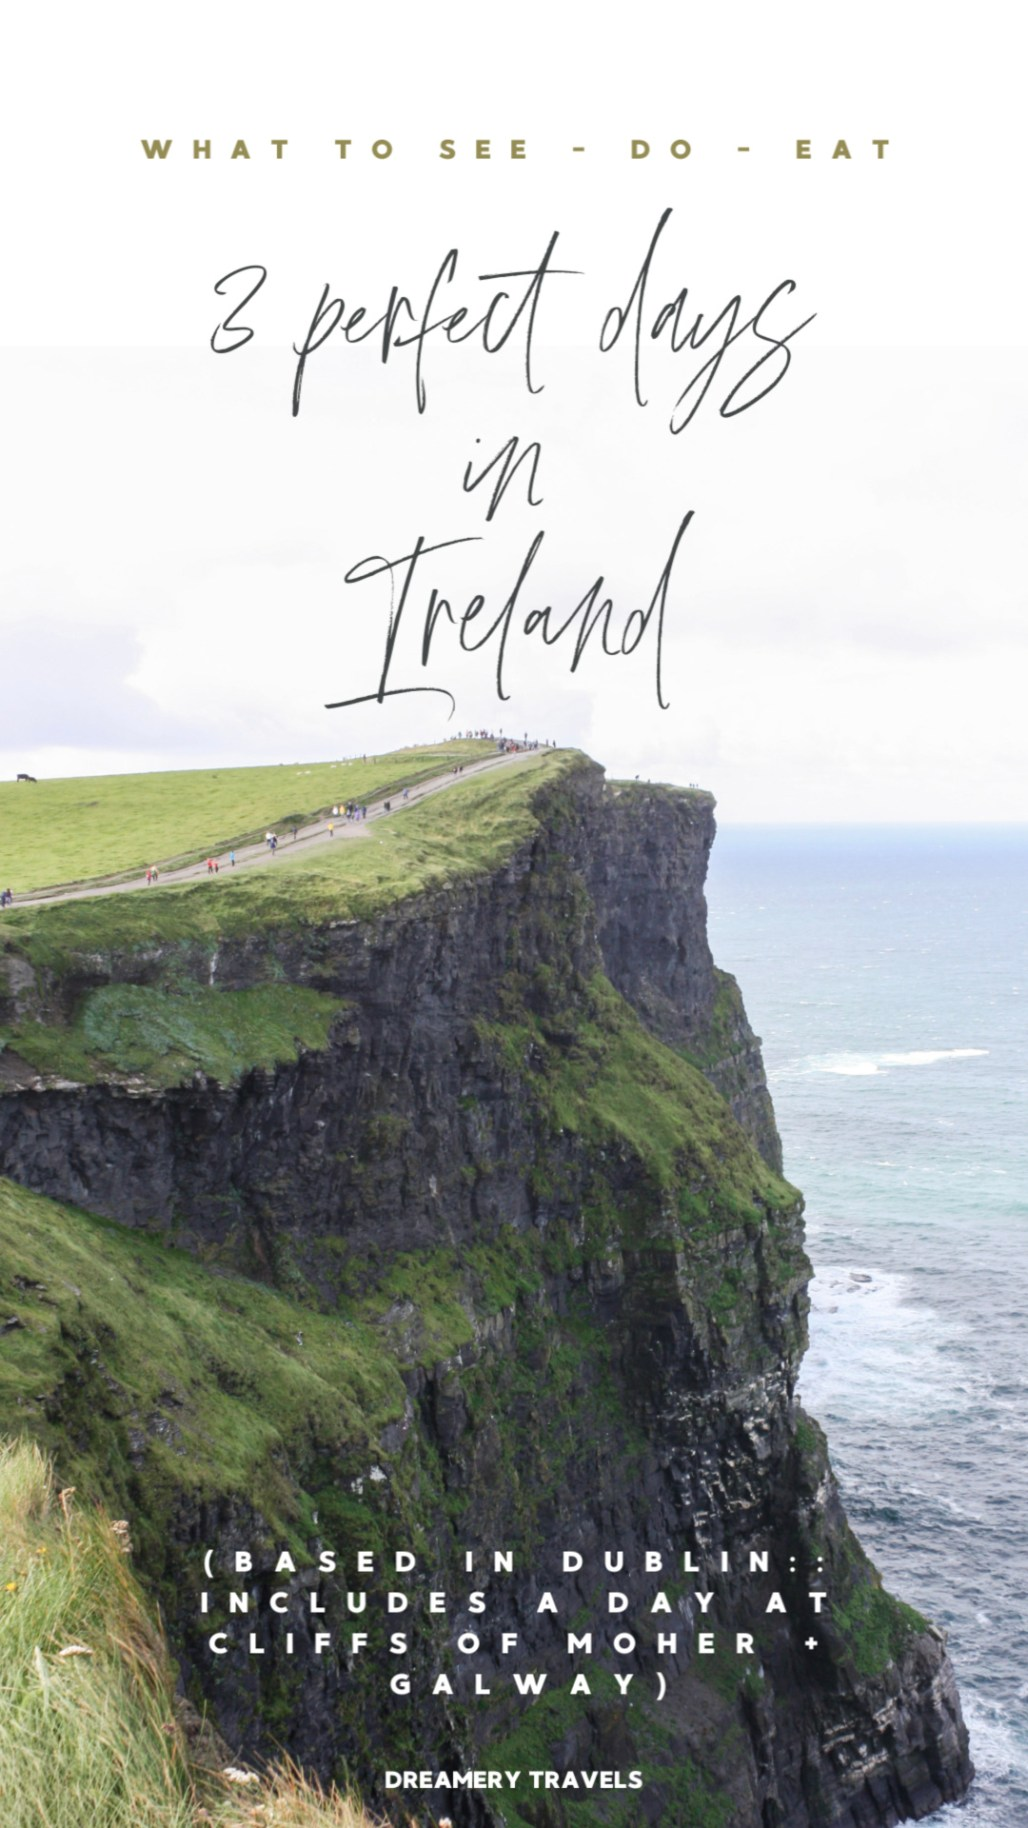 What to See, Do & Eat in 3 Days in Ireland || Dublin Based || Dreamery Travels